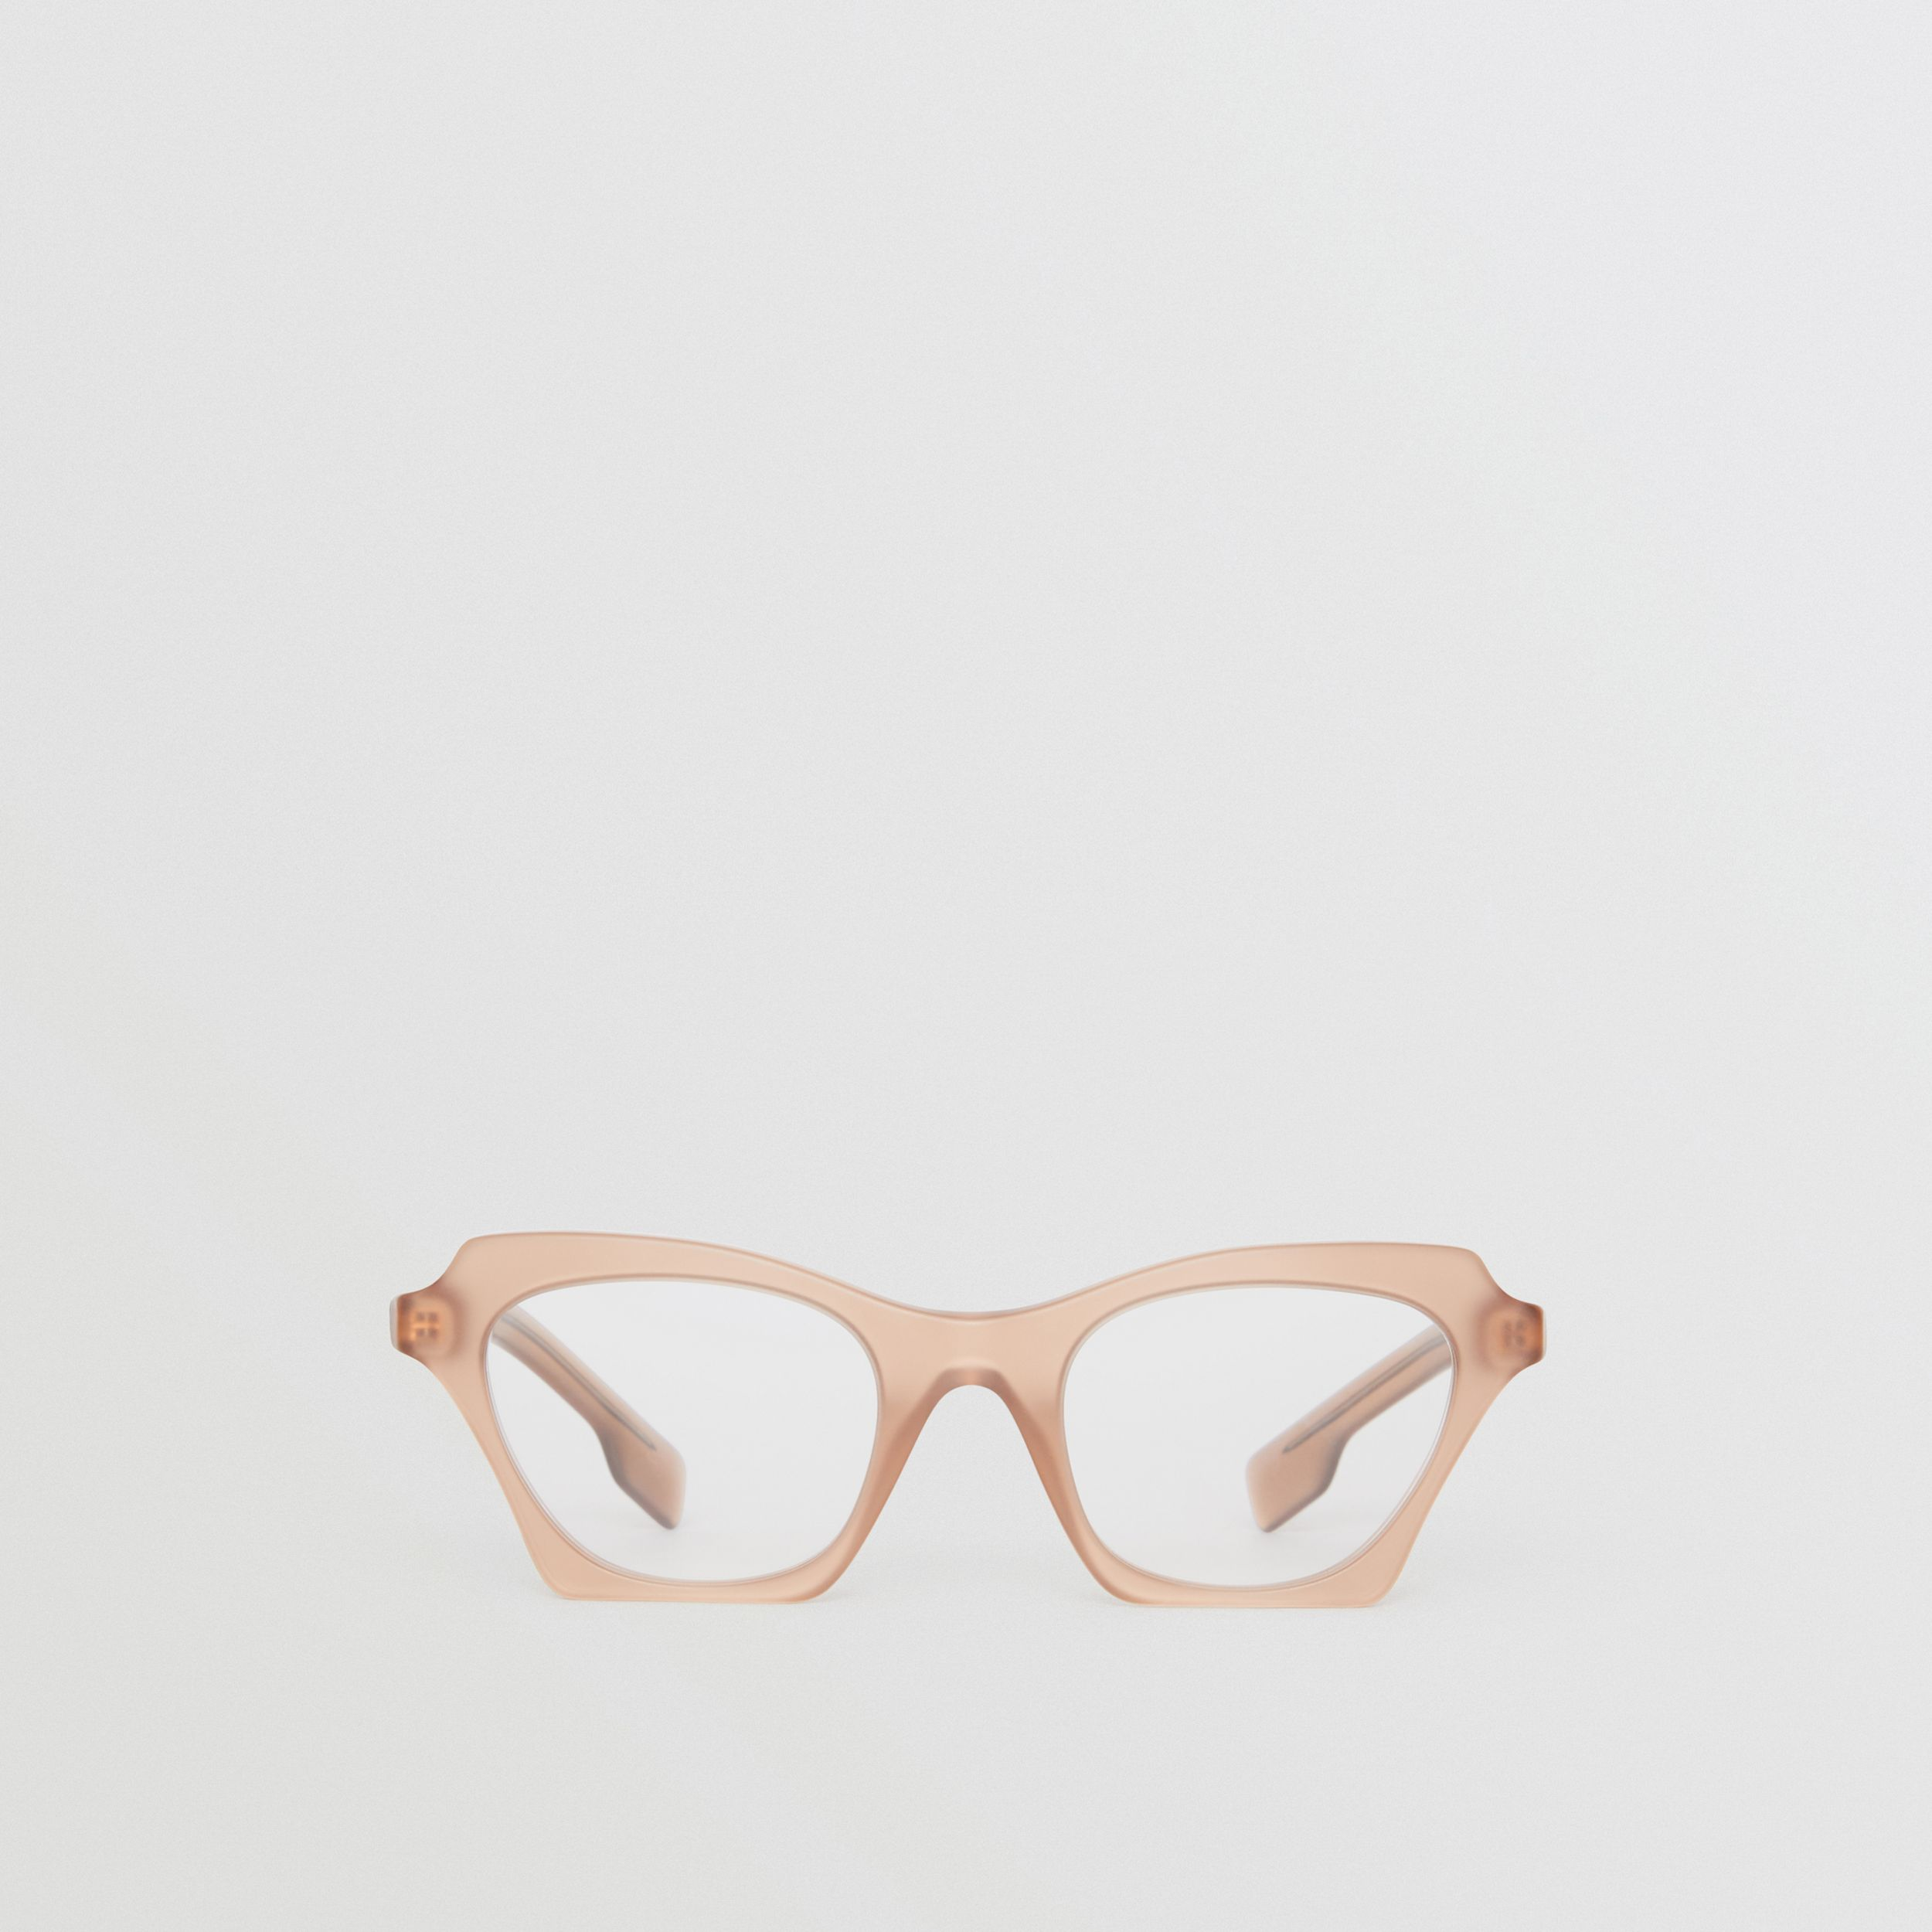 Butterfly Optical Frames in Brown - Women | Burberry - 1